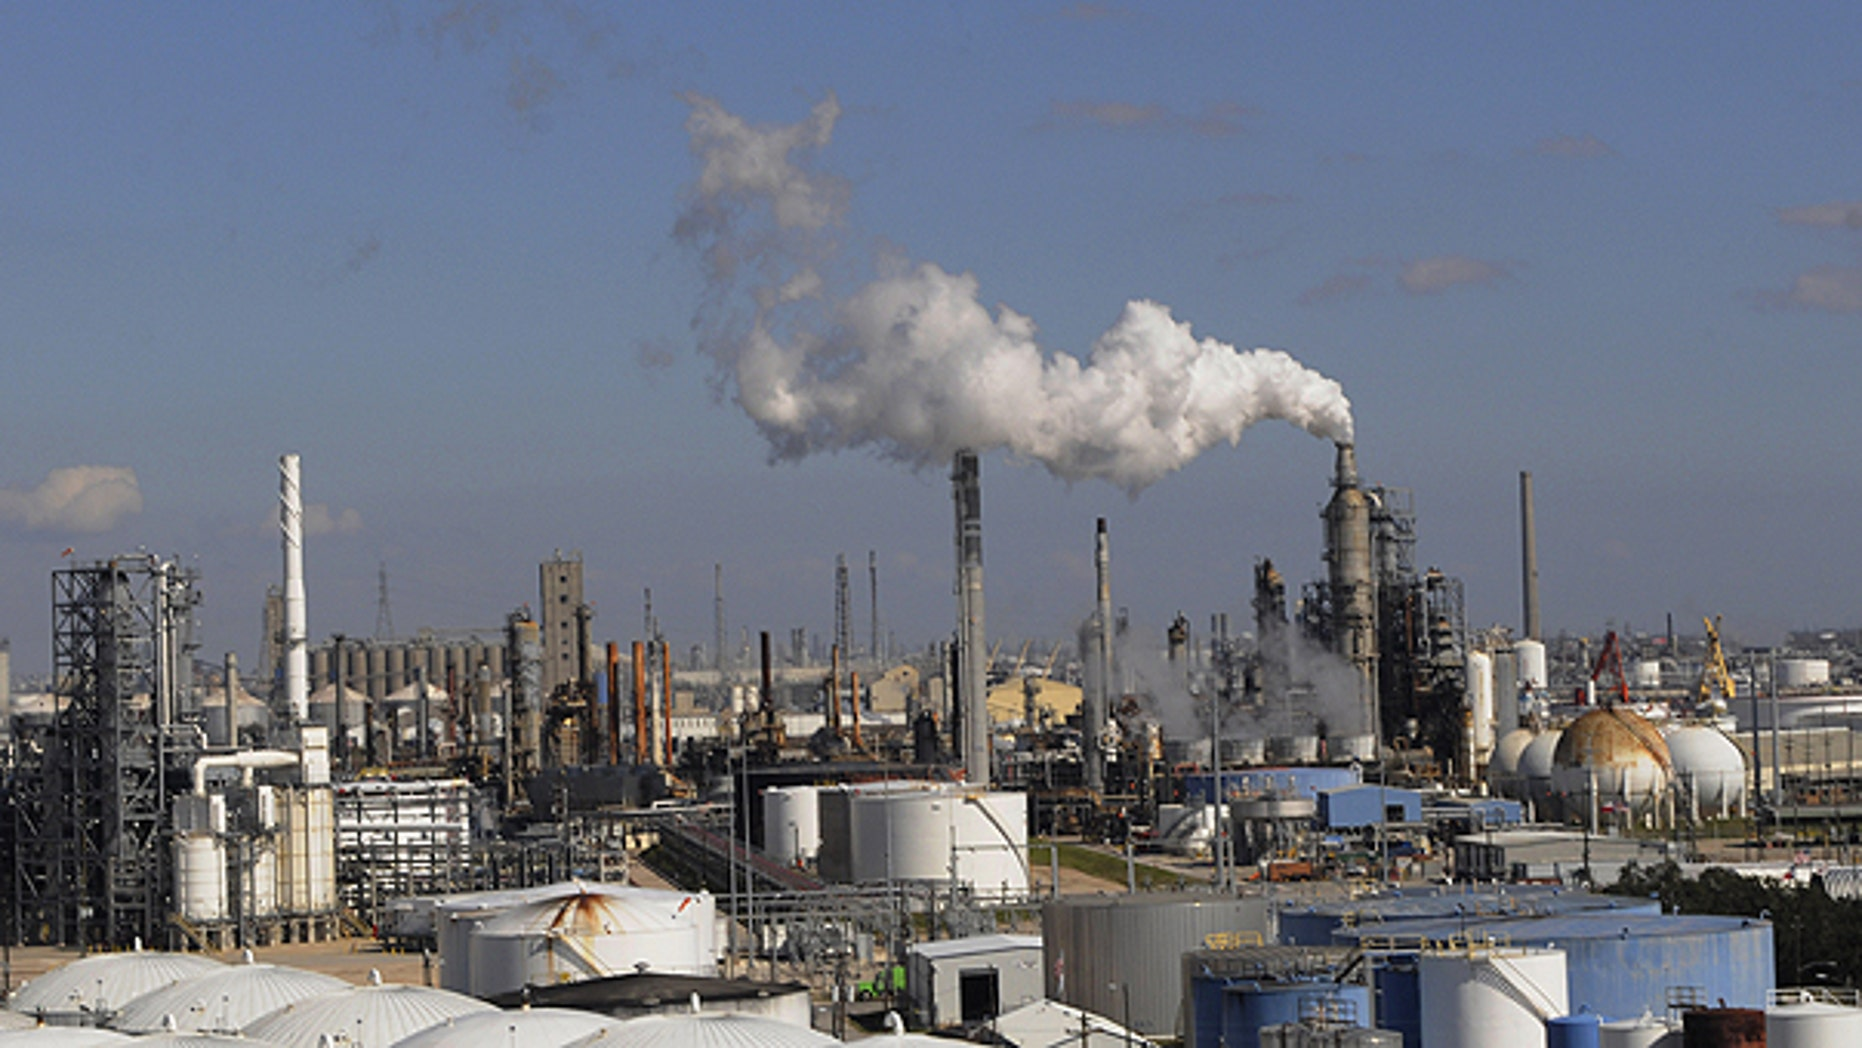 n this Feb. 25, 2010 file photo, refineries and chemical plants release steam near the Houston ship channel.